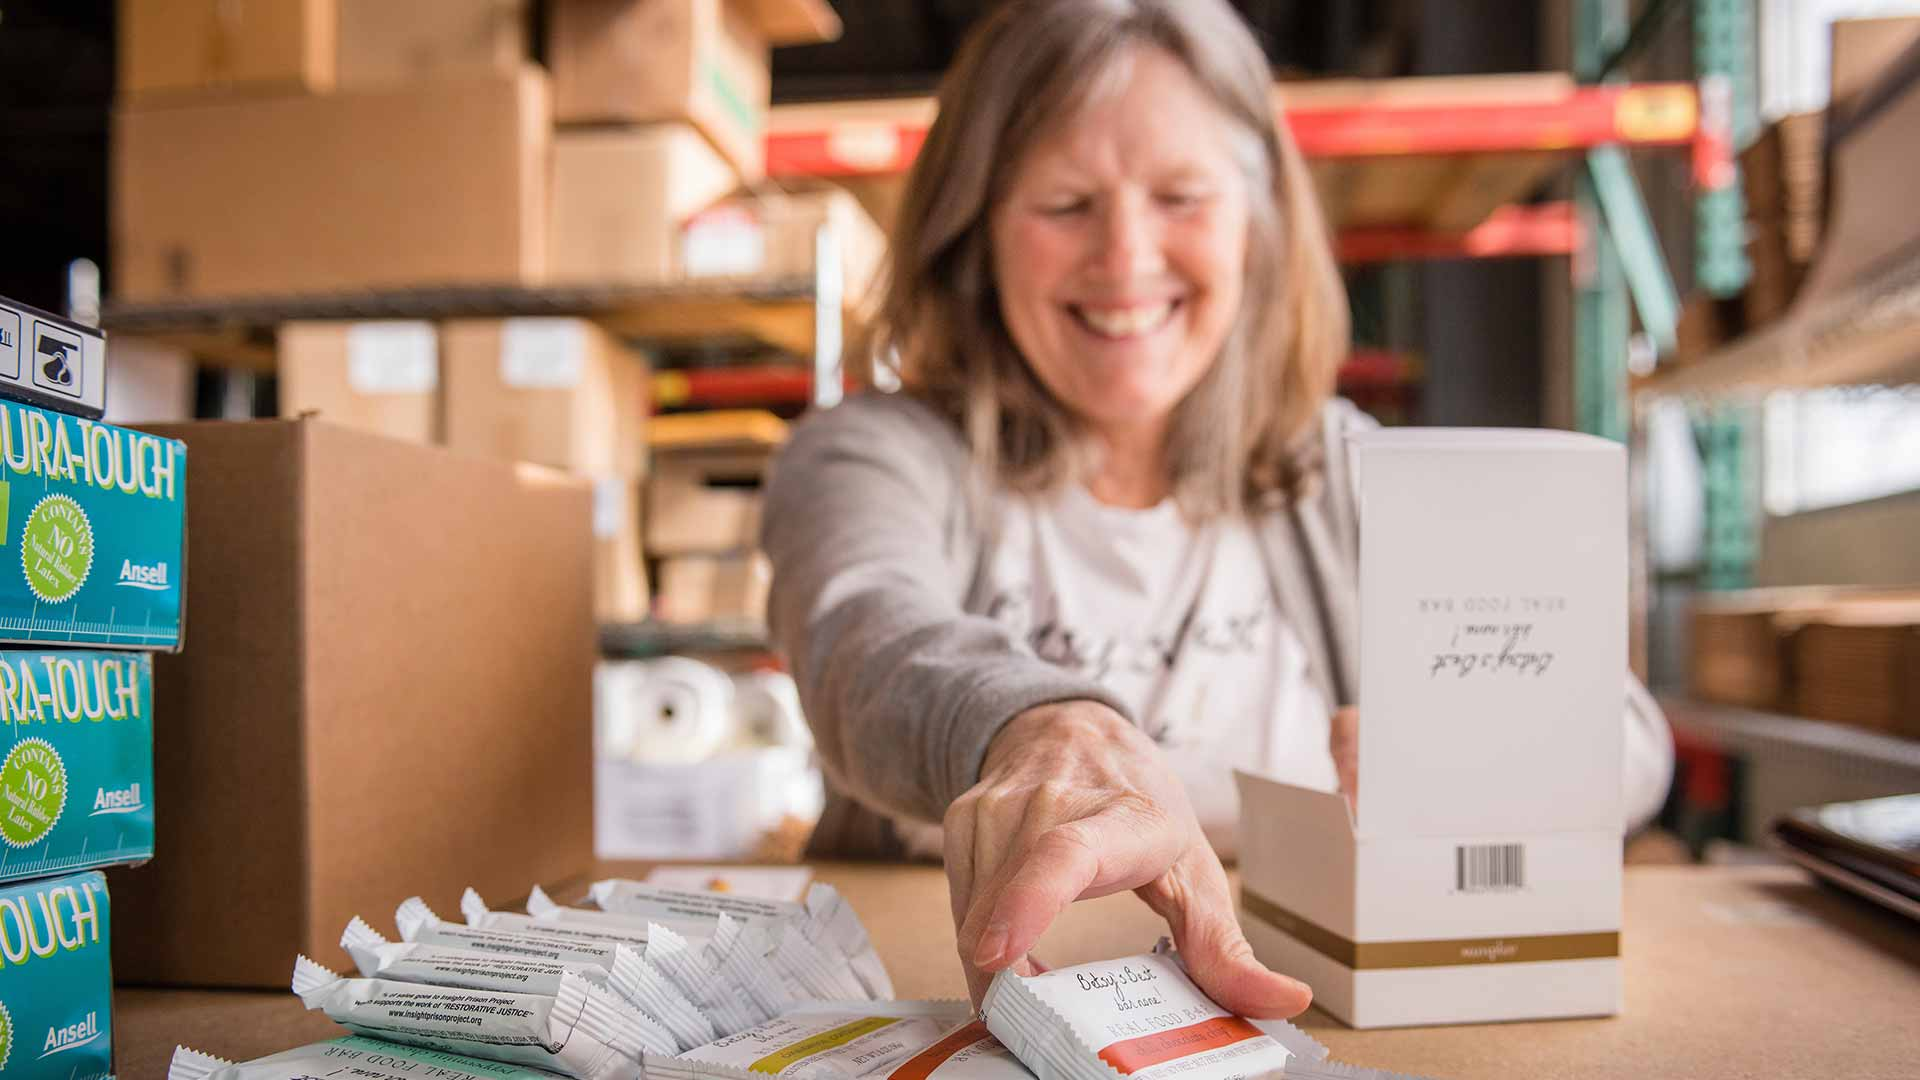 smiling woman in a work room boxes up energy bars